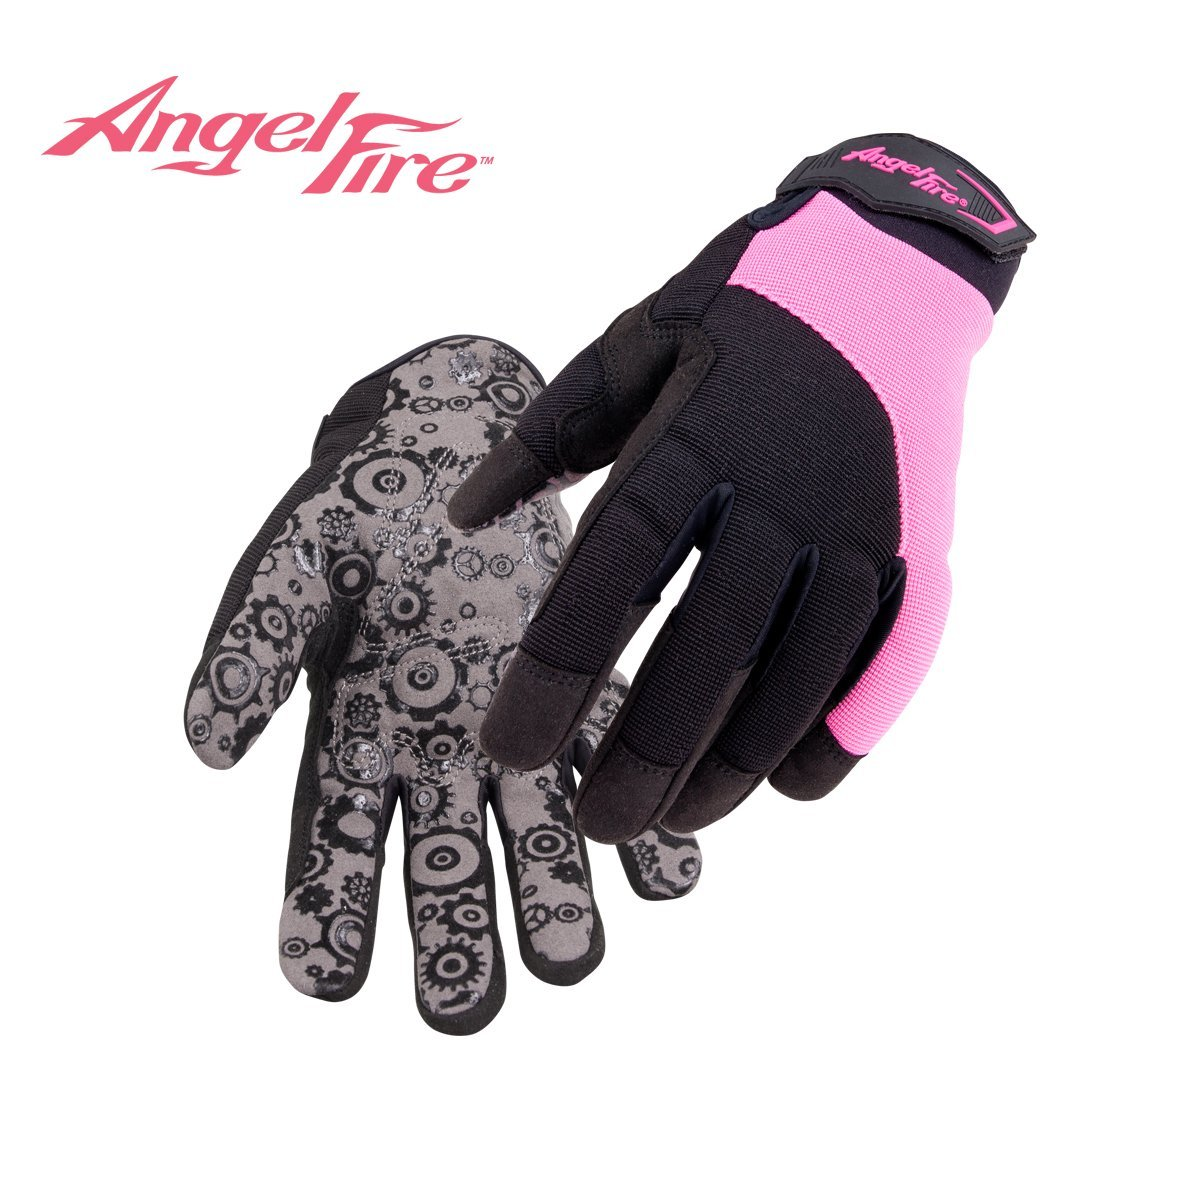 REVCO BLACK STALLION - GX103 TOOLHANDZ SYNTHETIC LEATHER WOMEN MECHANIC'S GLOVES - SIZE: MEDIUM - CASE OF: 120 PAIR